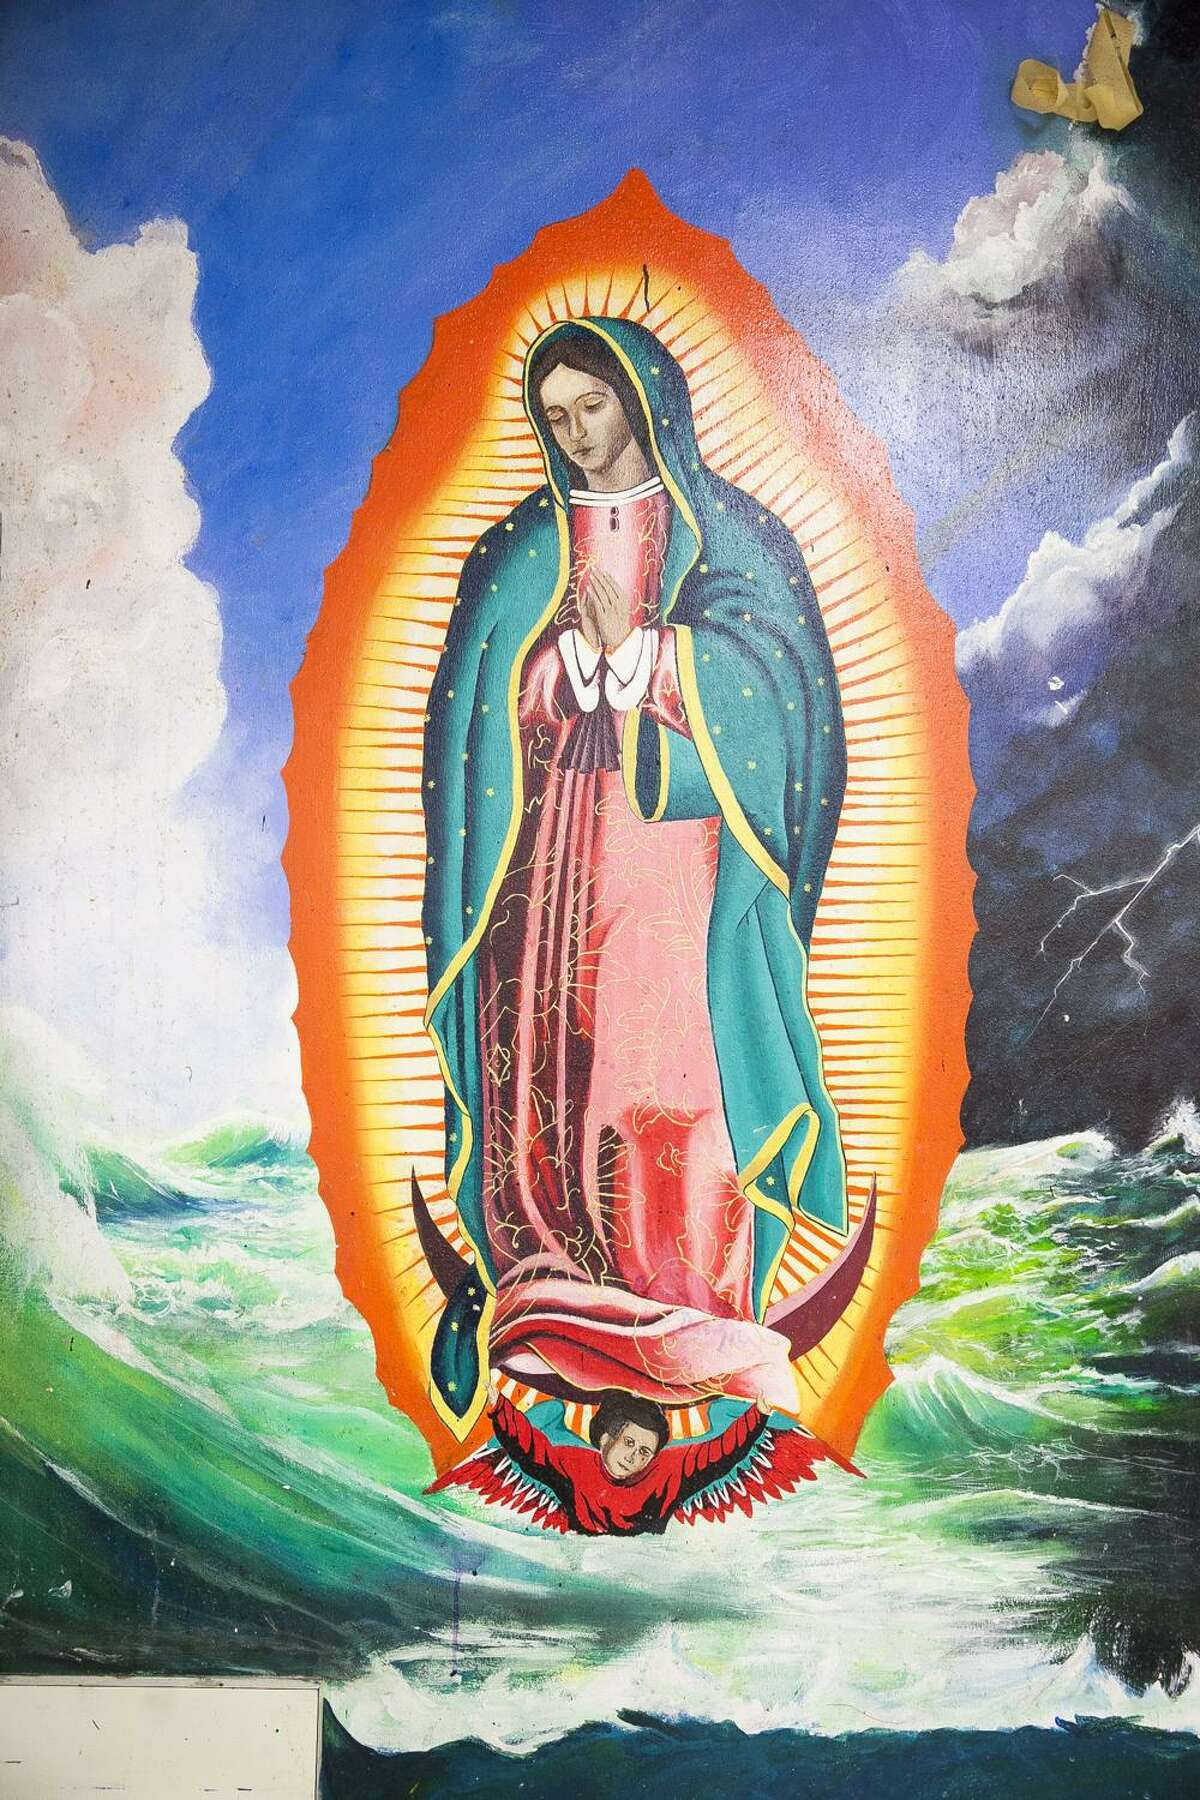 """""""Virgen de Guadalupe"""" mural painted in 1977 at Lanier High School. It was produced by Lanier High School artists as part of a class project."""